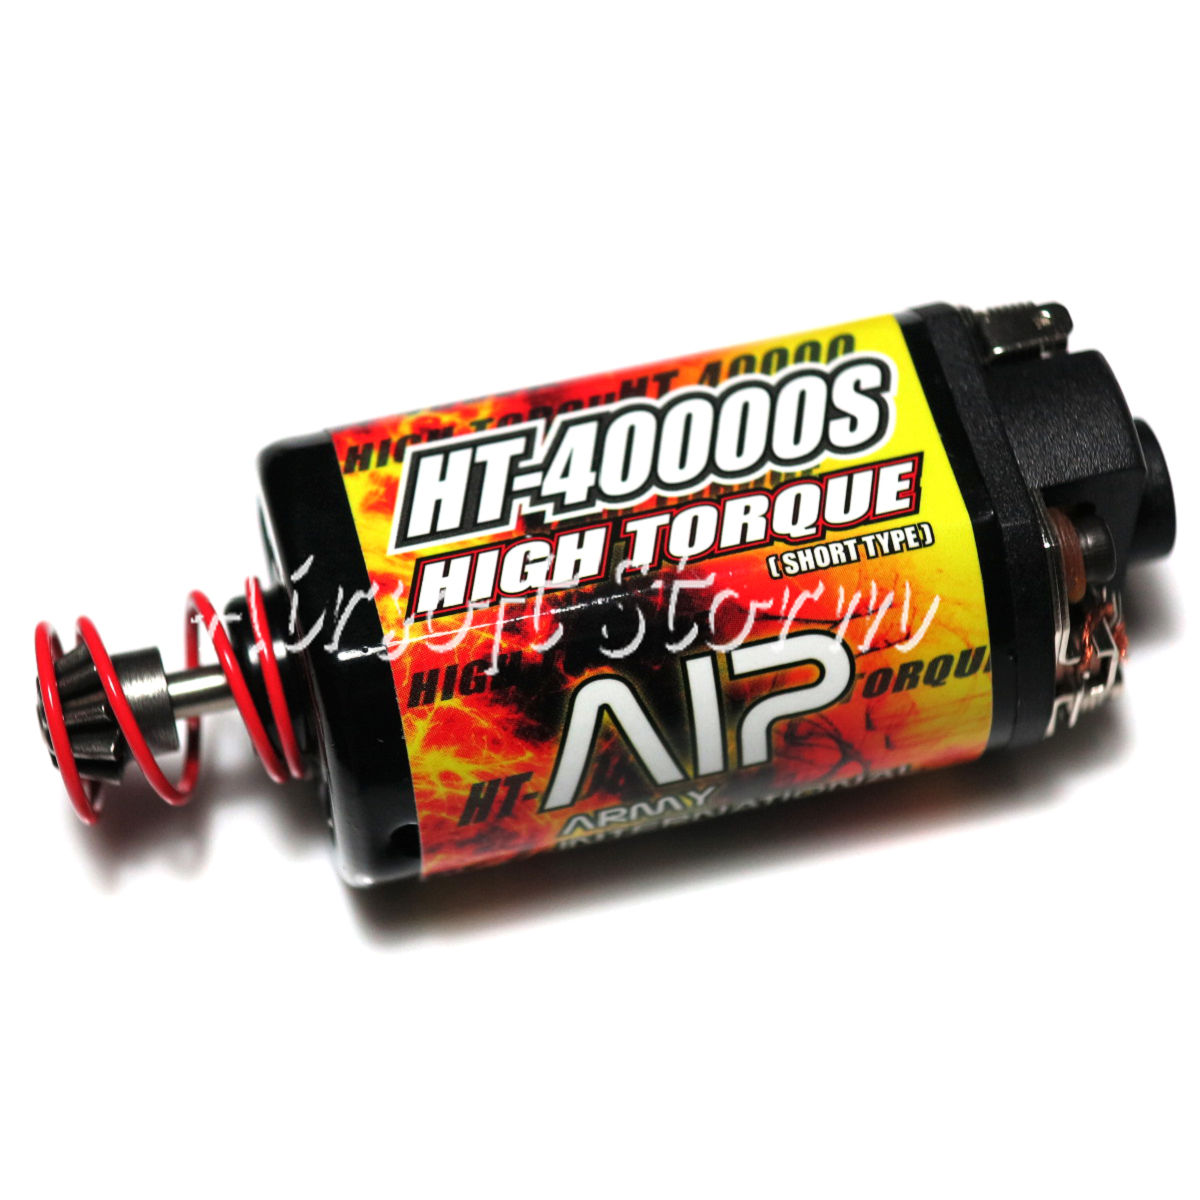 Airsoft Tactical Gear AIP High Torque AEG Motor HT-40000 (Short Type)